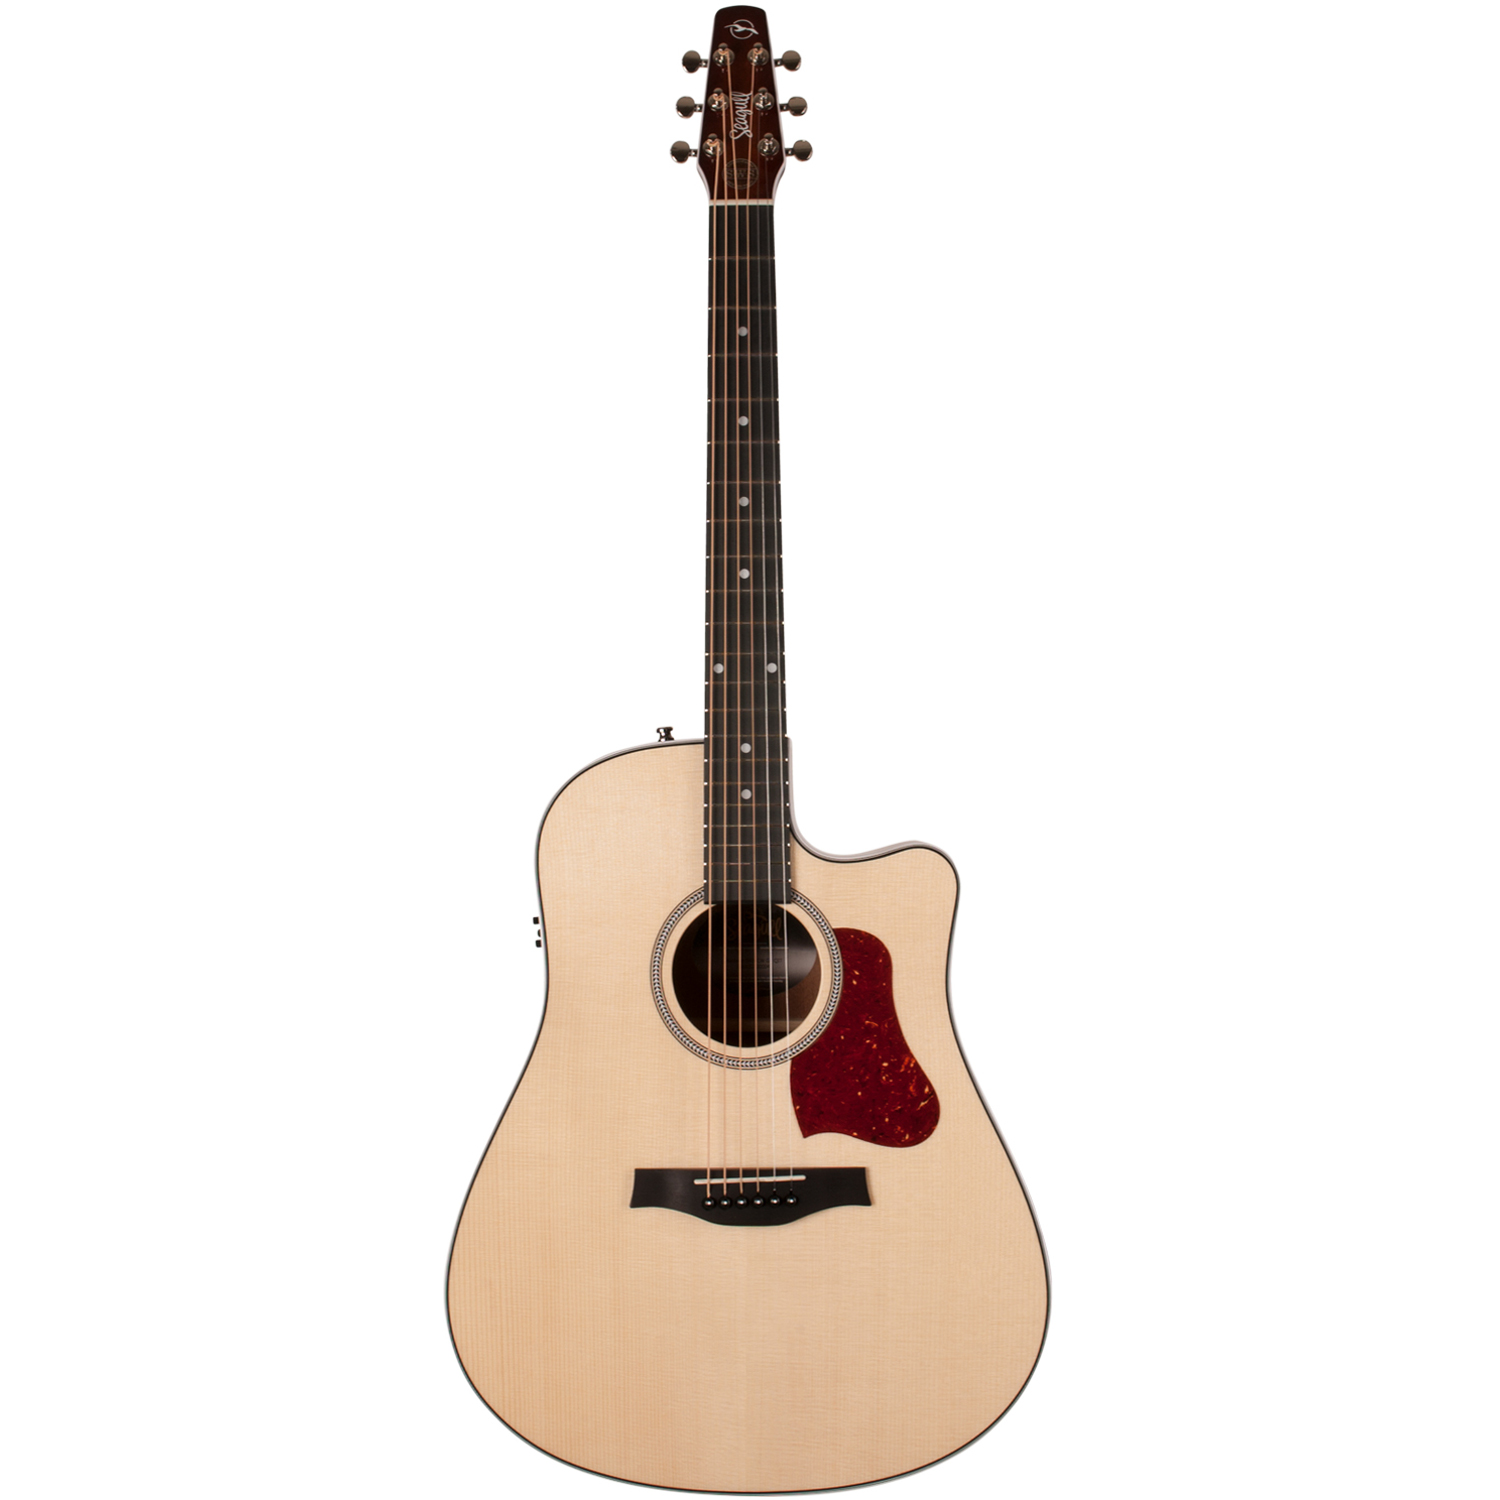 Seagull Maritime SWS CW Gloss Top QIT electro acoustic guitar